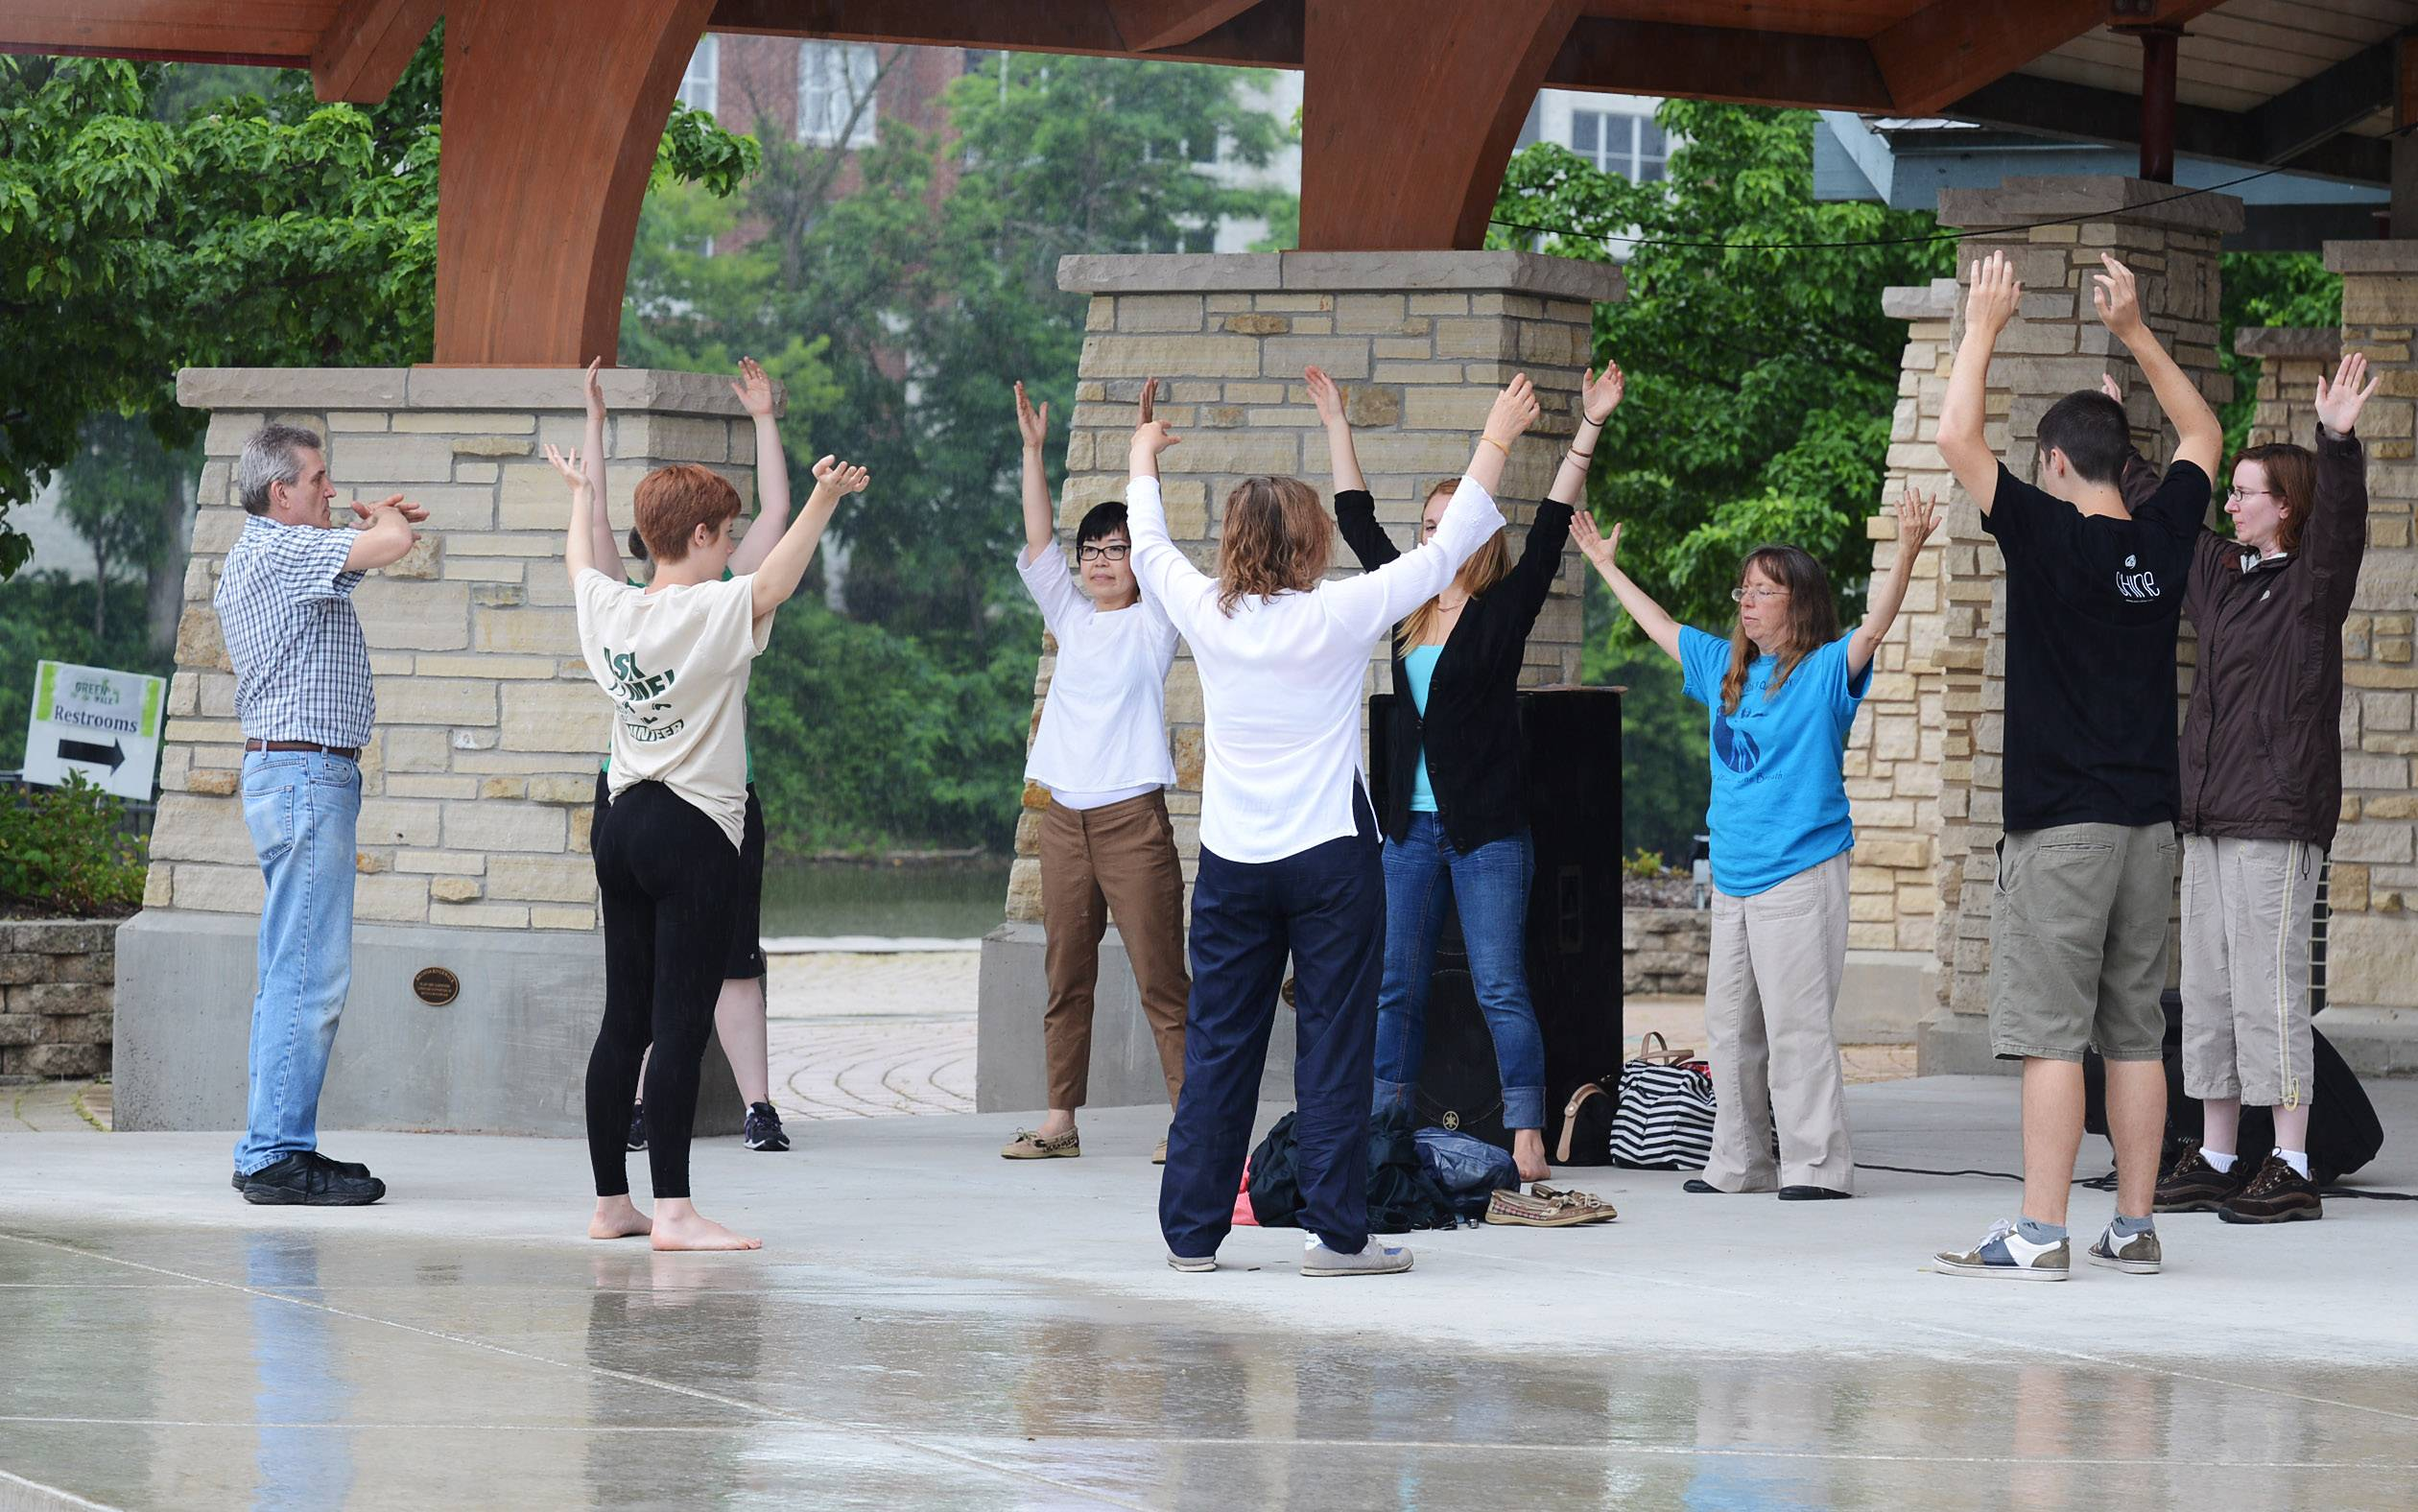 Renee Ryan of the Light Heart Center, located in Winfield, leads a Tai Chi class in the Peg Bond Center at last year's Batavia Green Walk, which is now the Batavia Green Fair on the Fox.